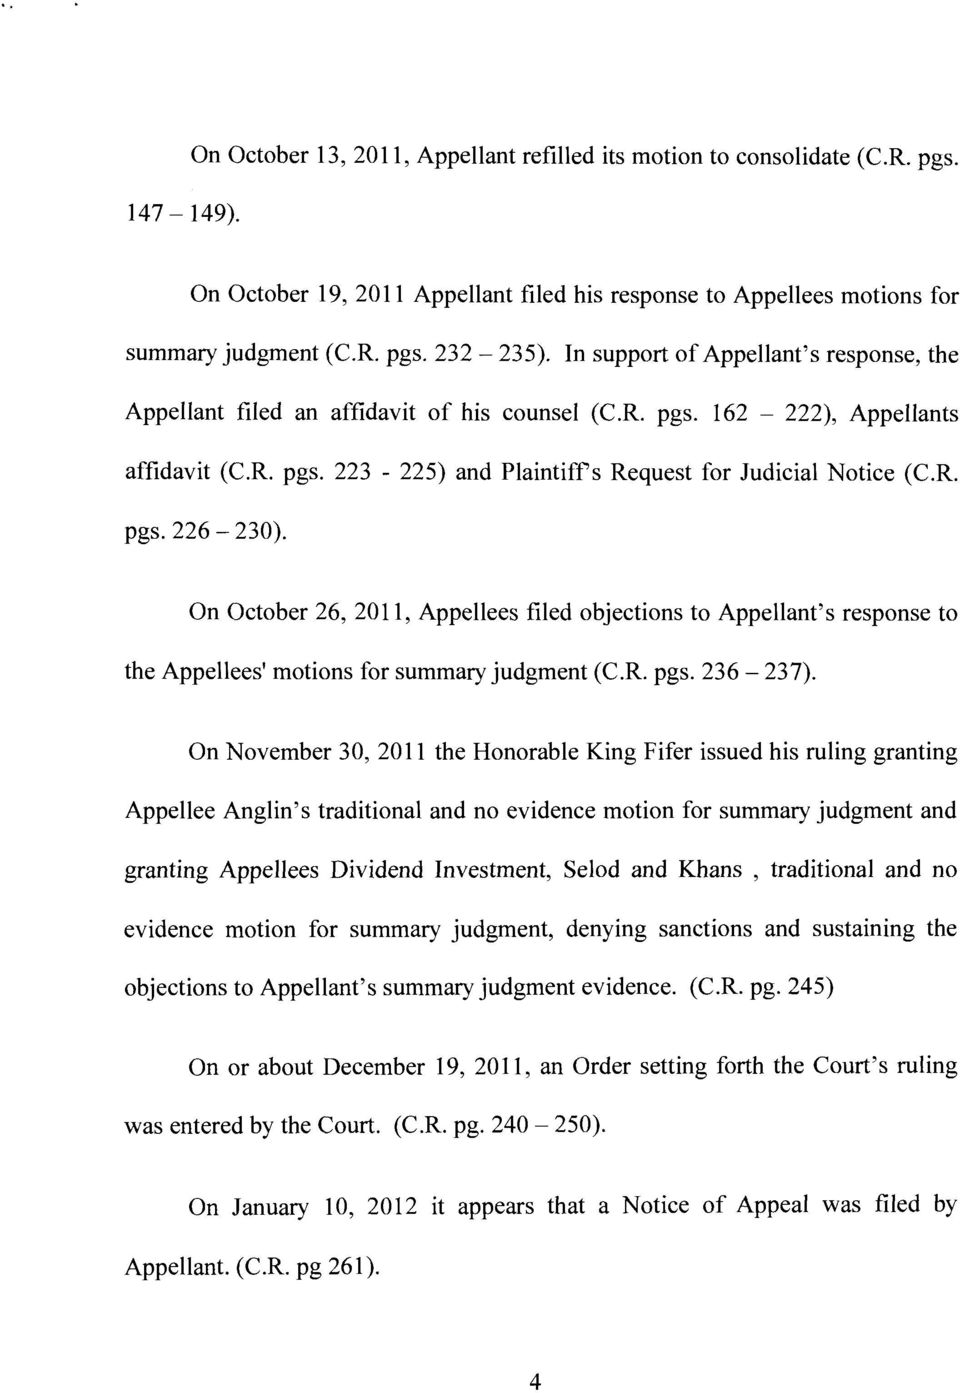 On October 26, 2011, Appellees filed objections to Appellant's response to the Appellees' motions for summary judgment (C.R. pgs. 236-237).